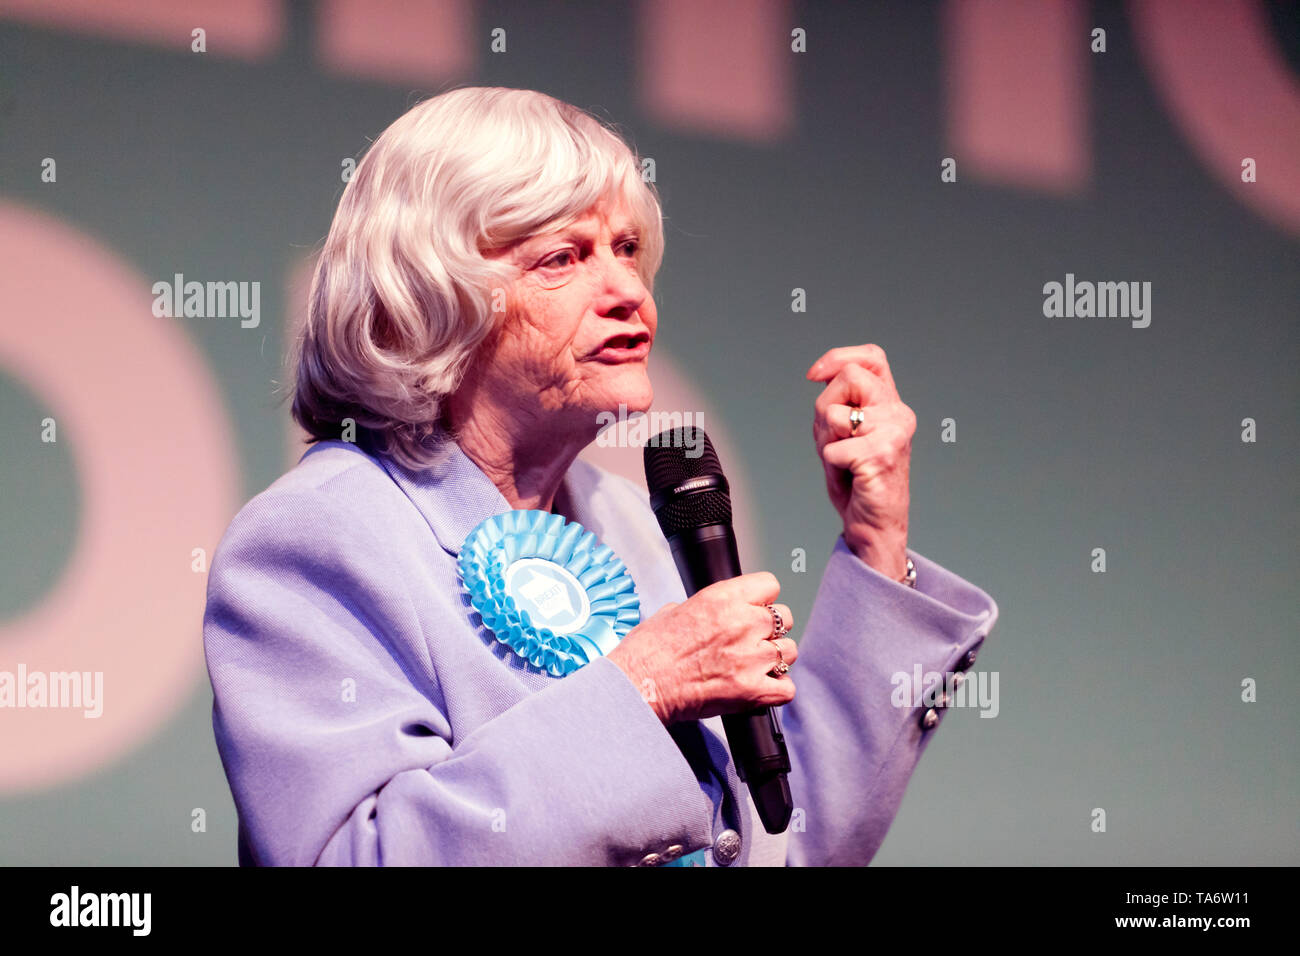 Ann Widdecombe addressing the supporters, during a Brexit Party Rally at Olympia, London. Stock Photo